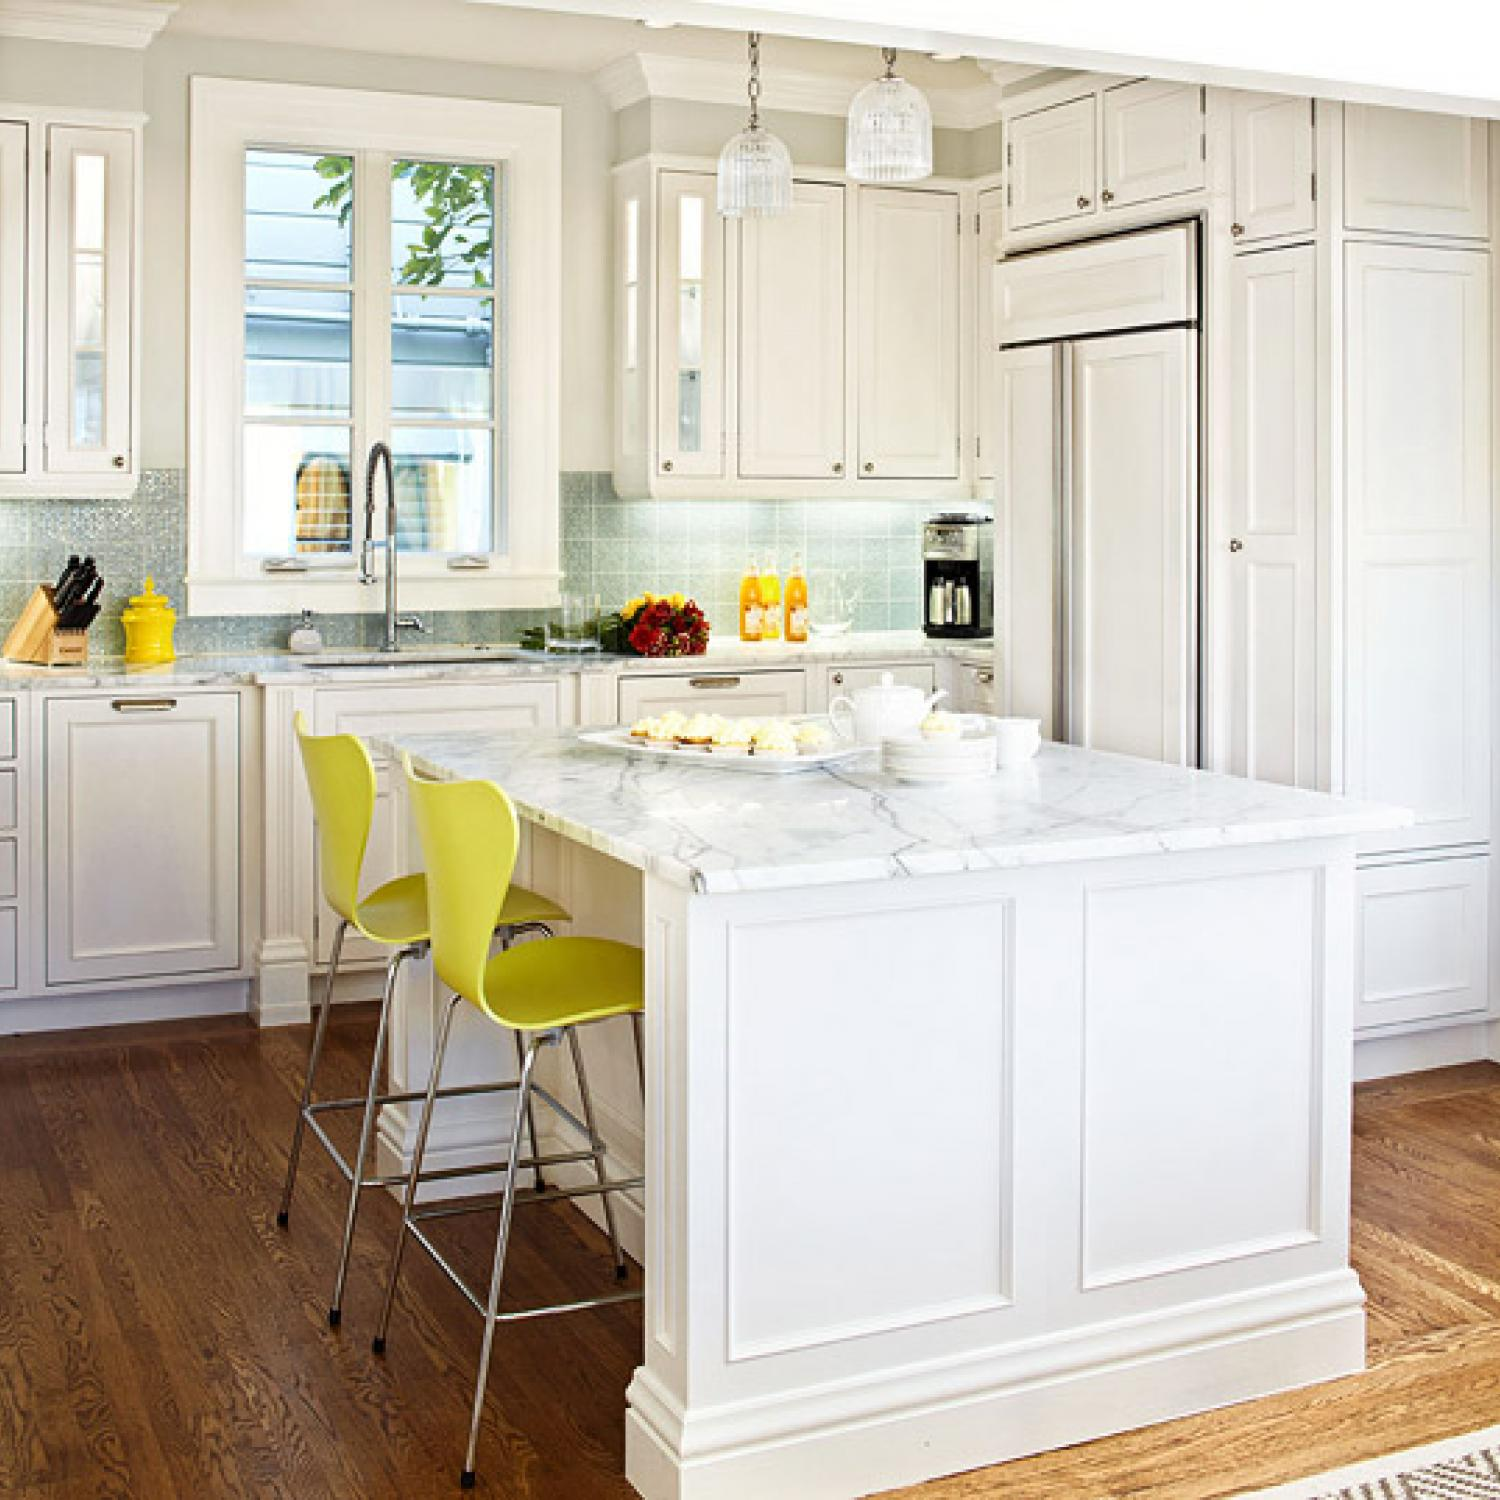 Design ideas for white kitchens traditional home Best white kitchen ideas